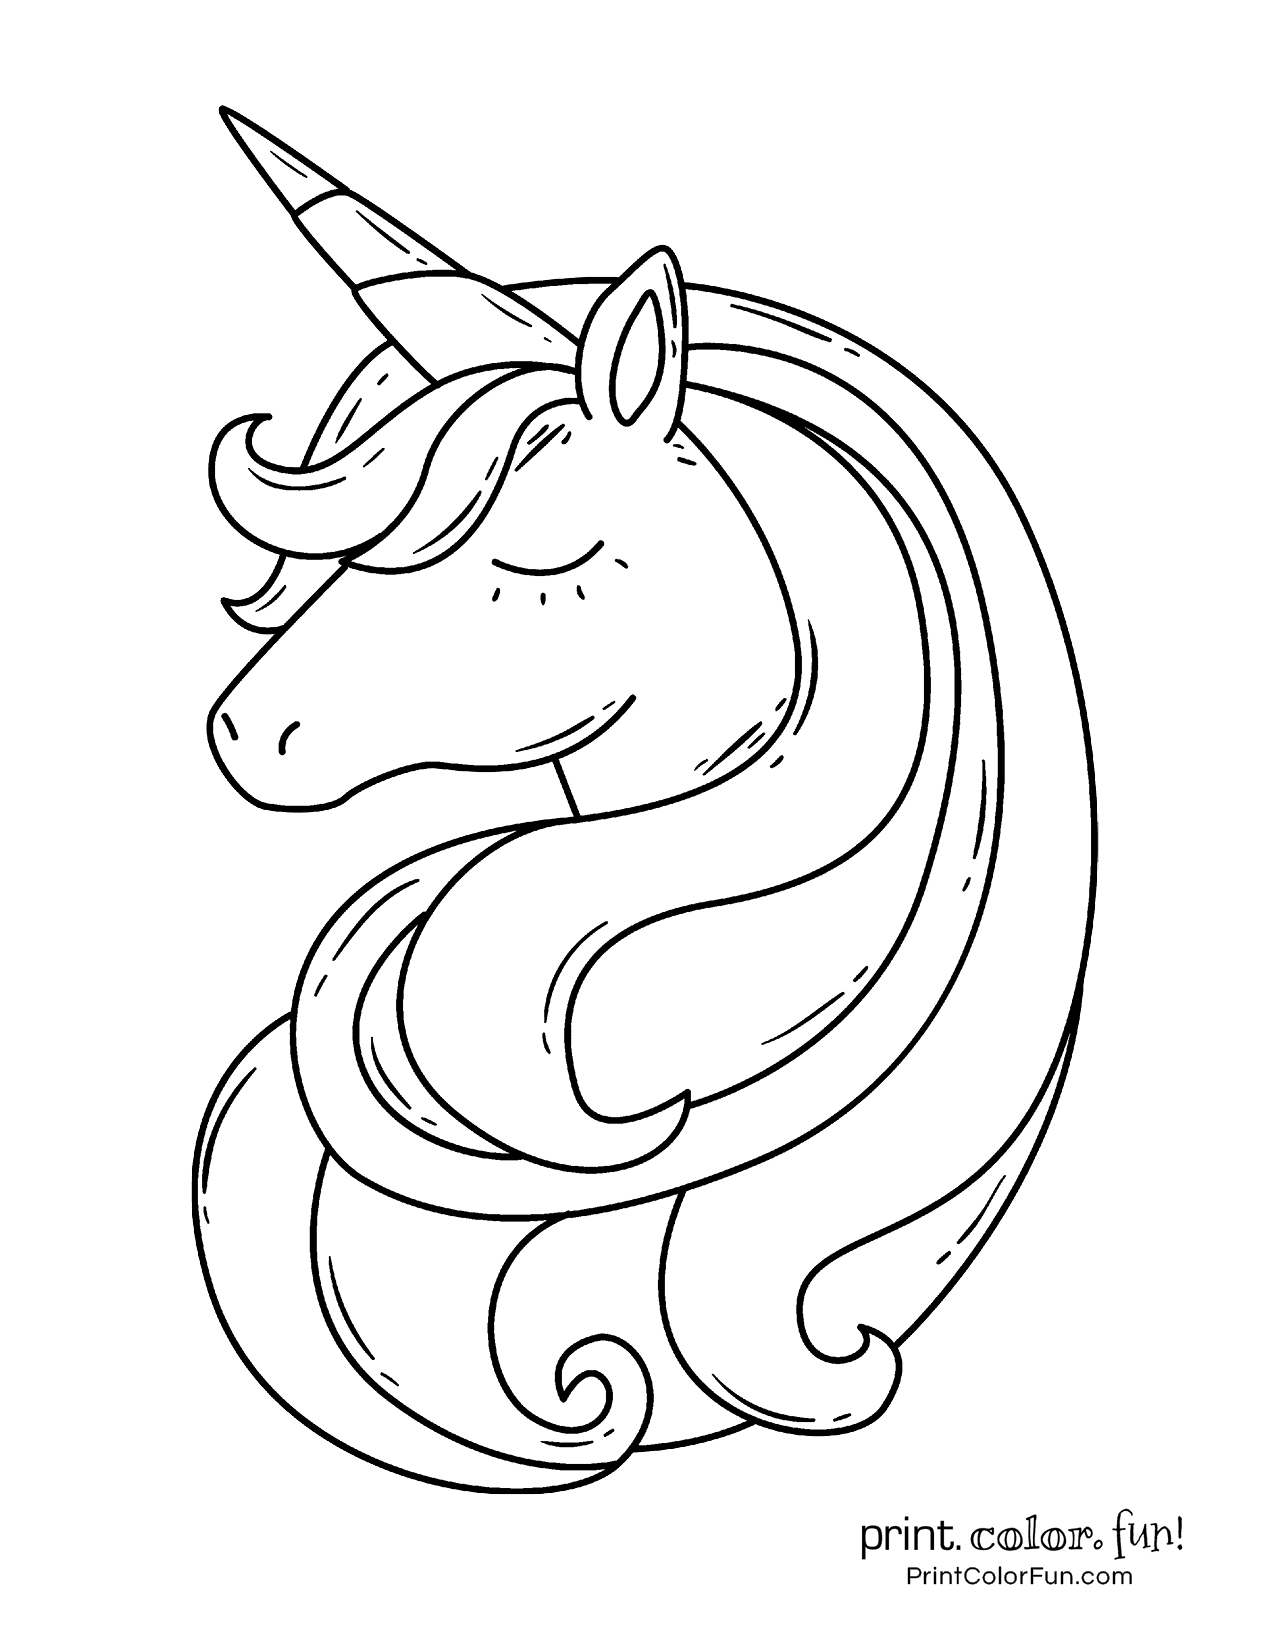 Easy Unicorn Head Coloring Pages